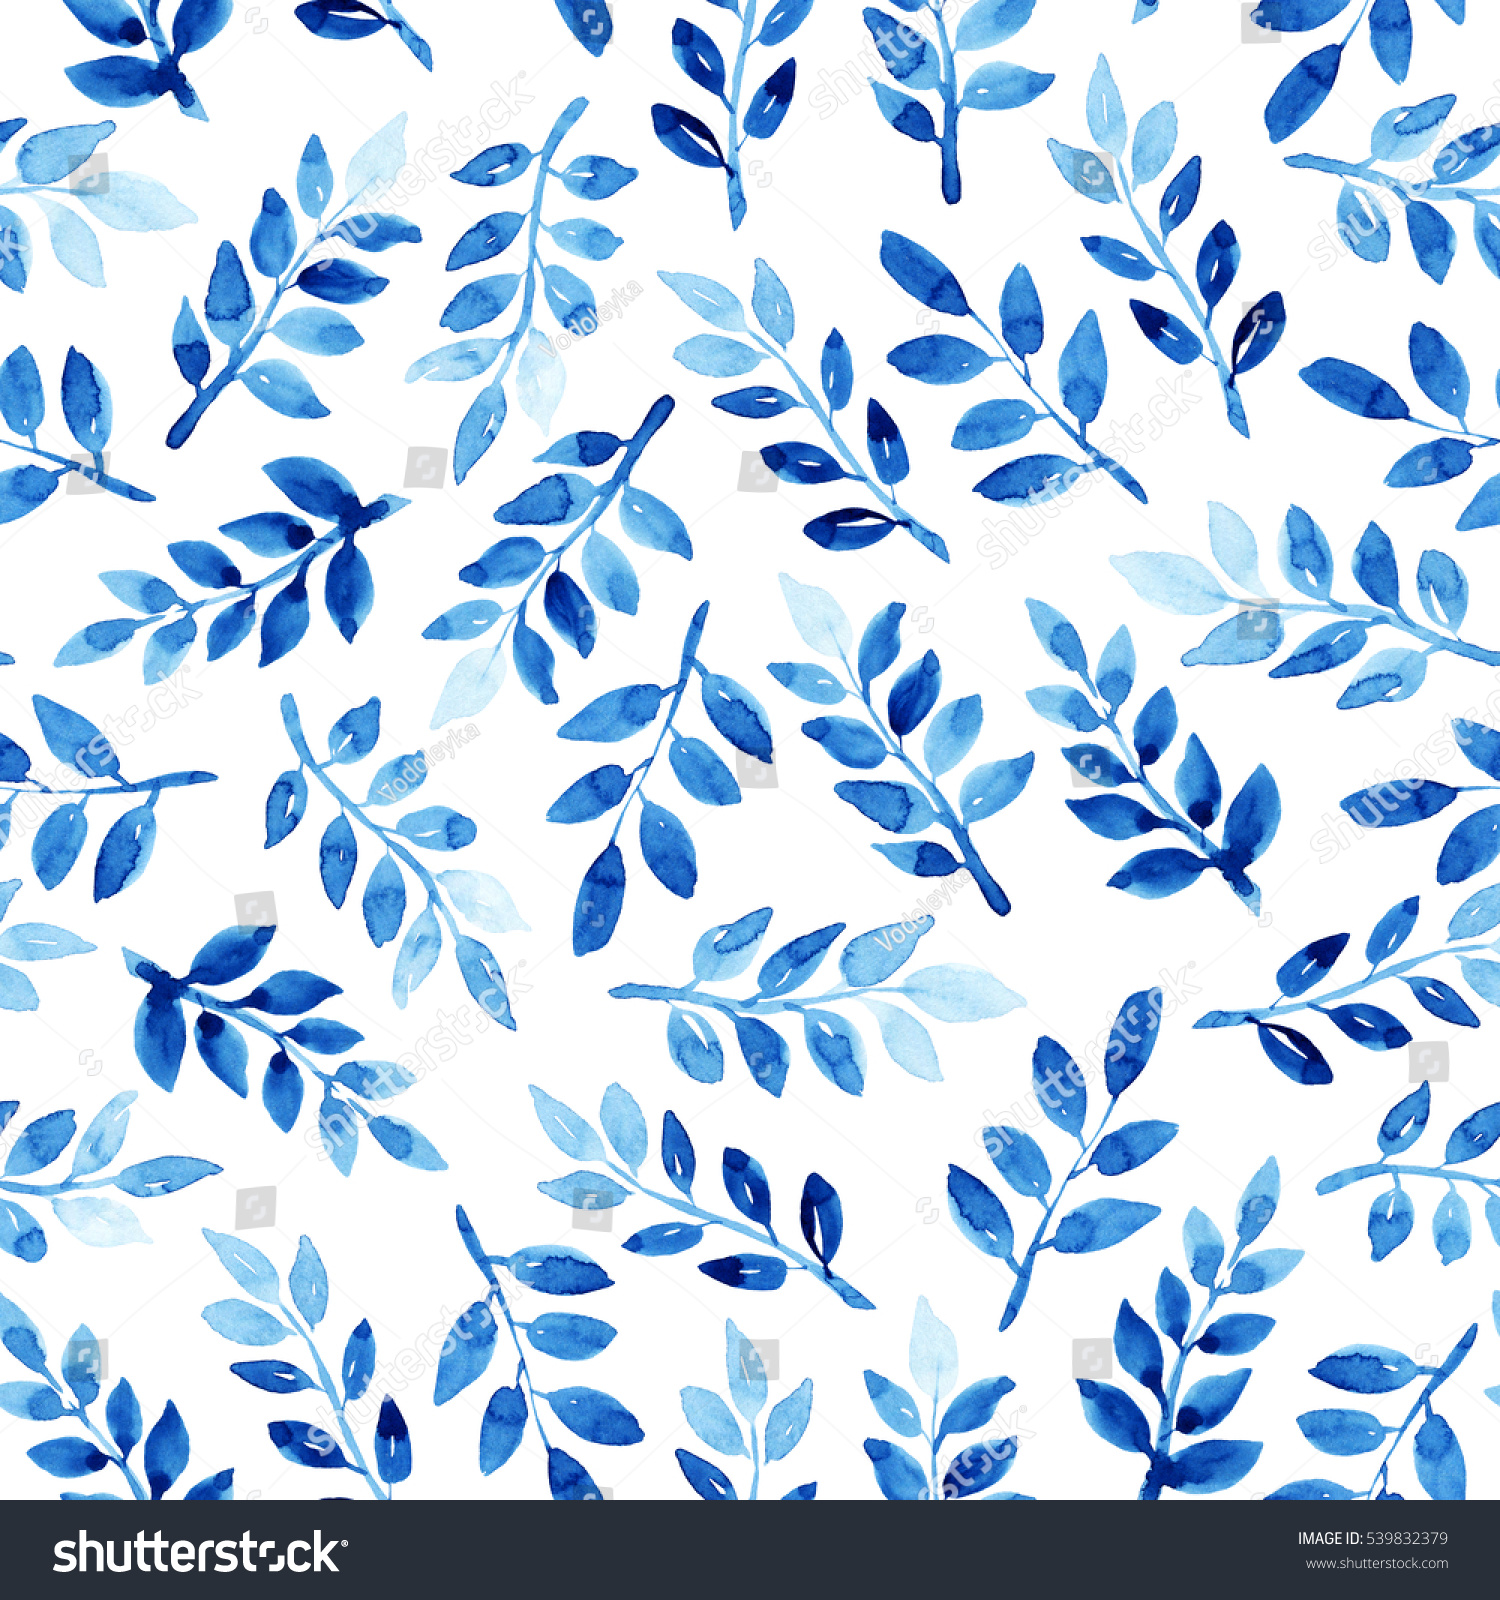 Watercolor Seamless Pattern With Leaves Blue On The White Background Handmade Texture Template For Textile Wallpaper Wrapping Paper Etc